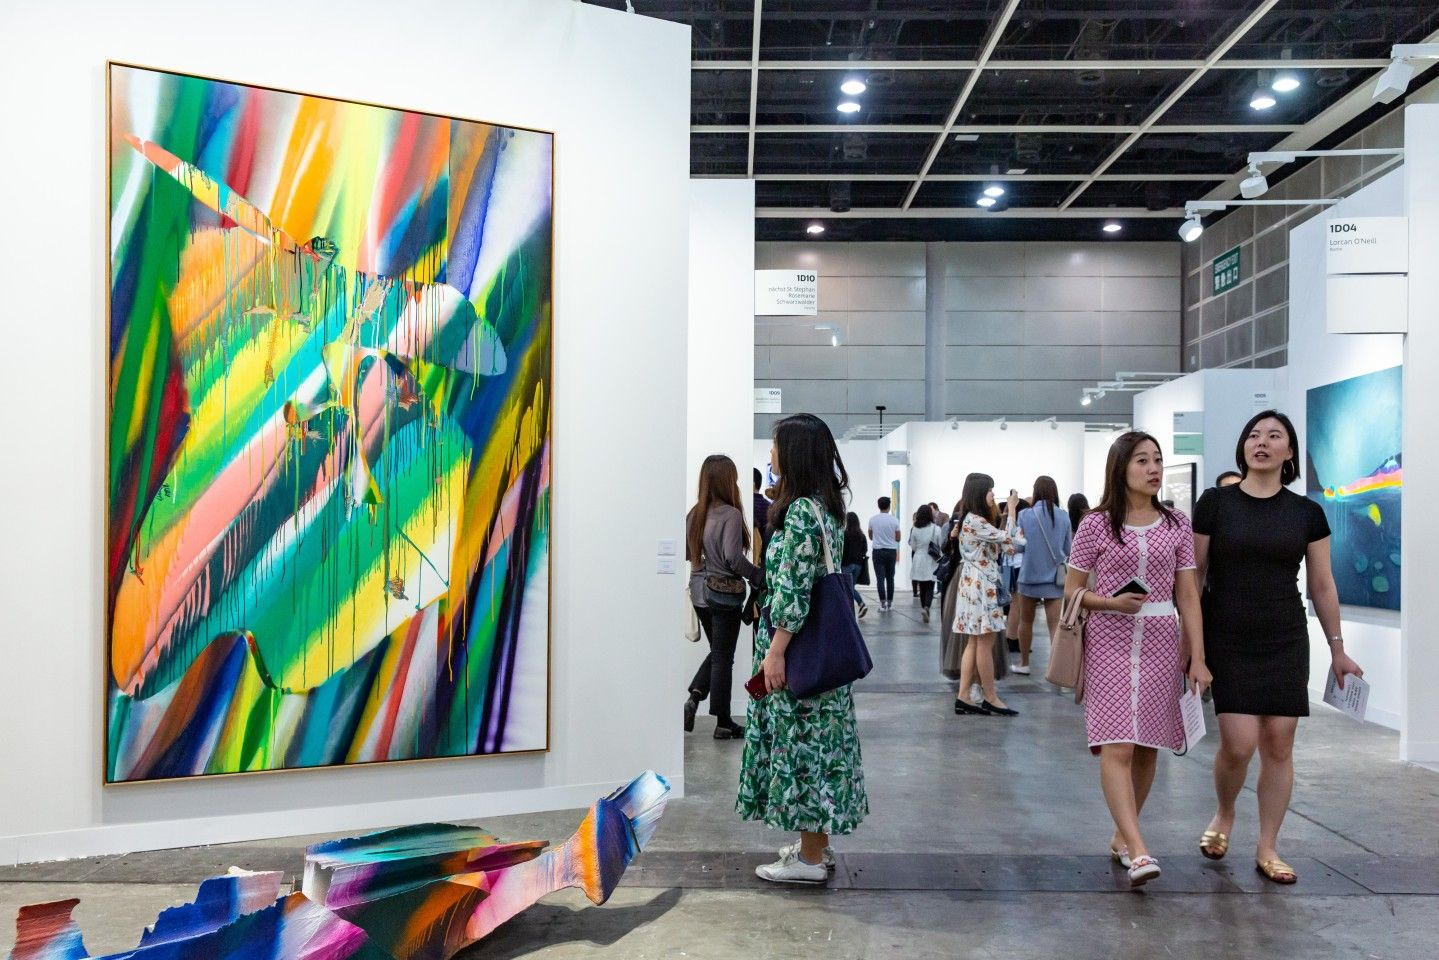 01115025-art-basel-hong-kong_cover_1439x960.JPG